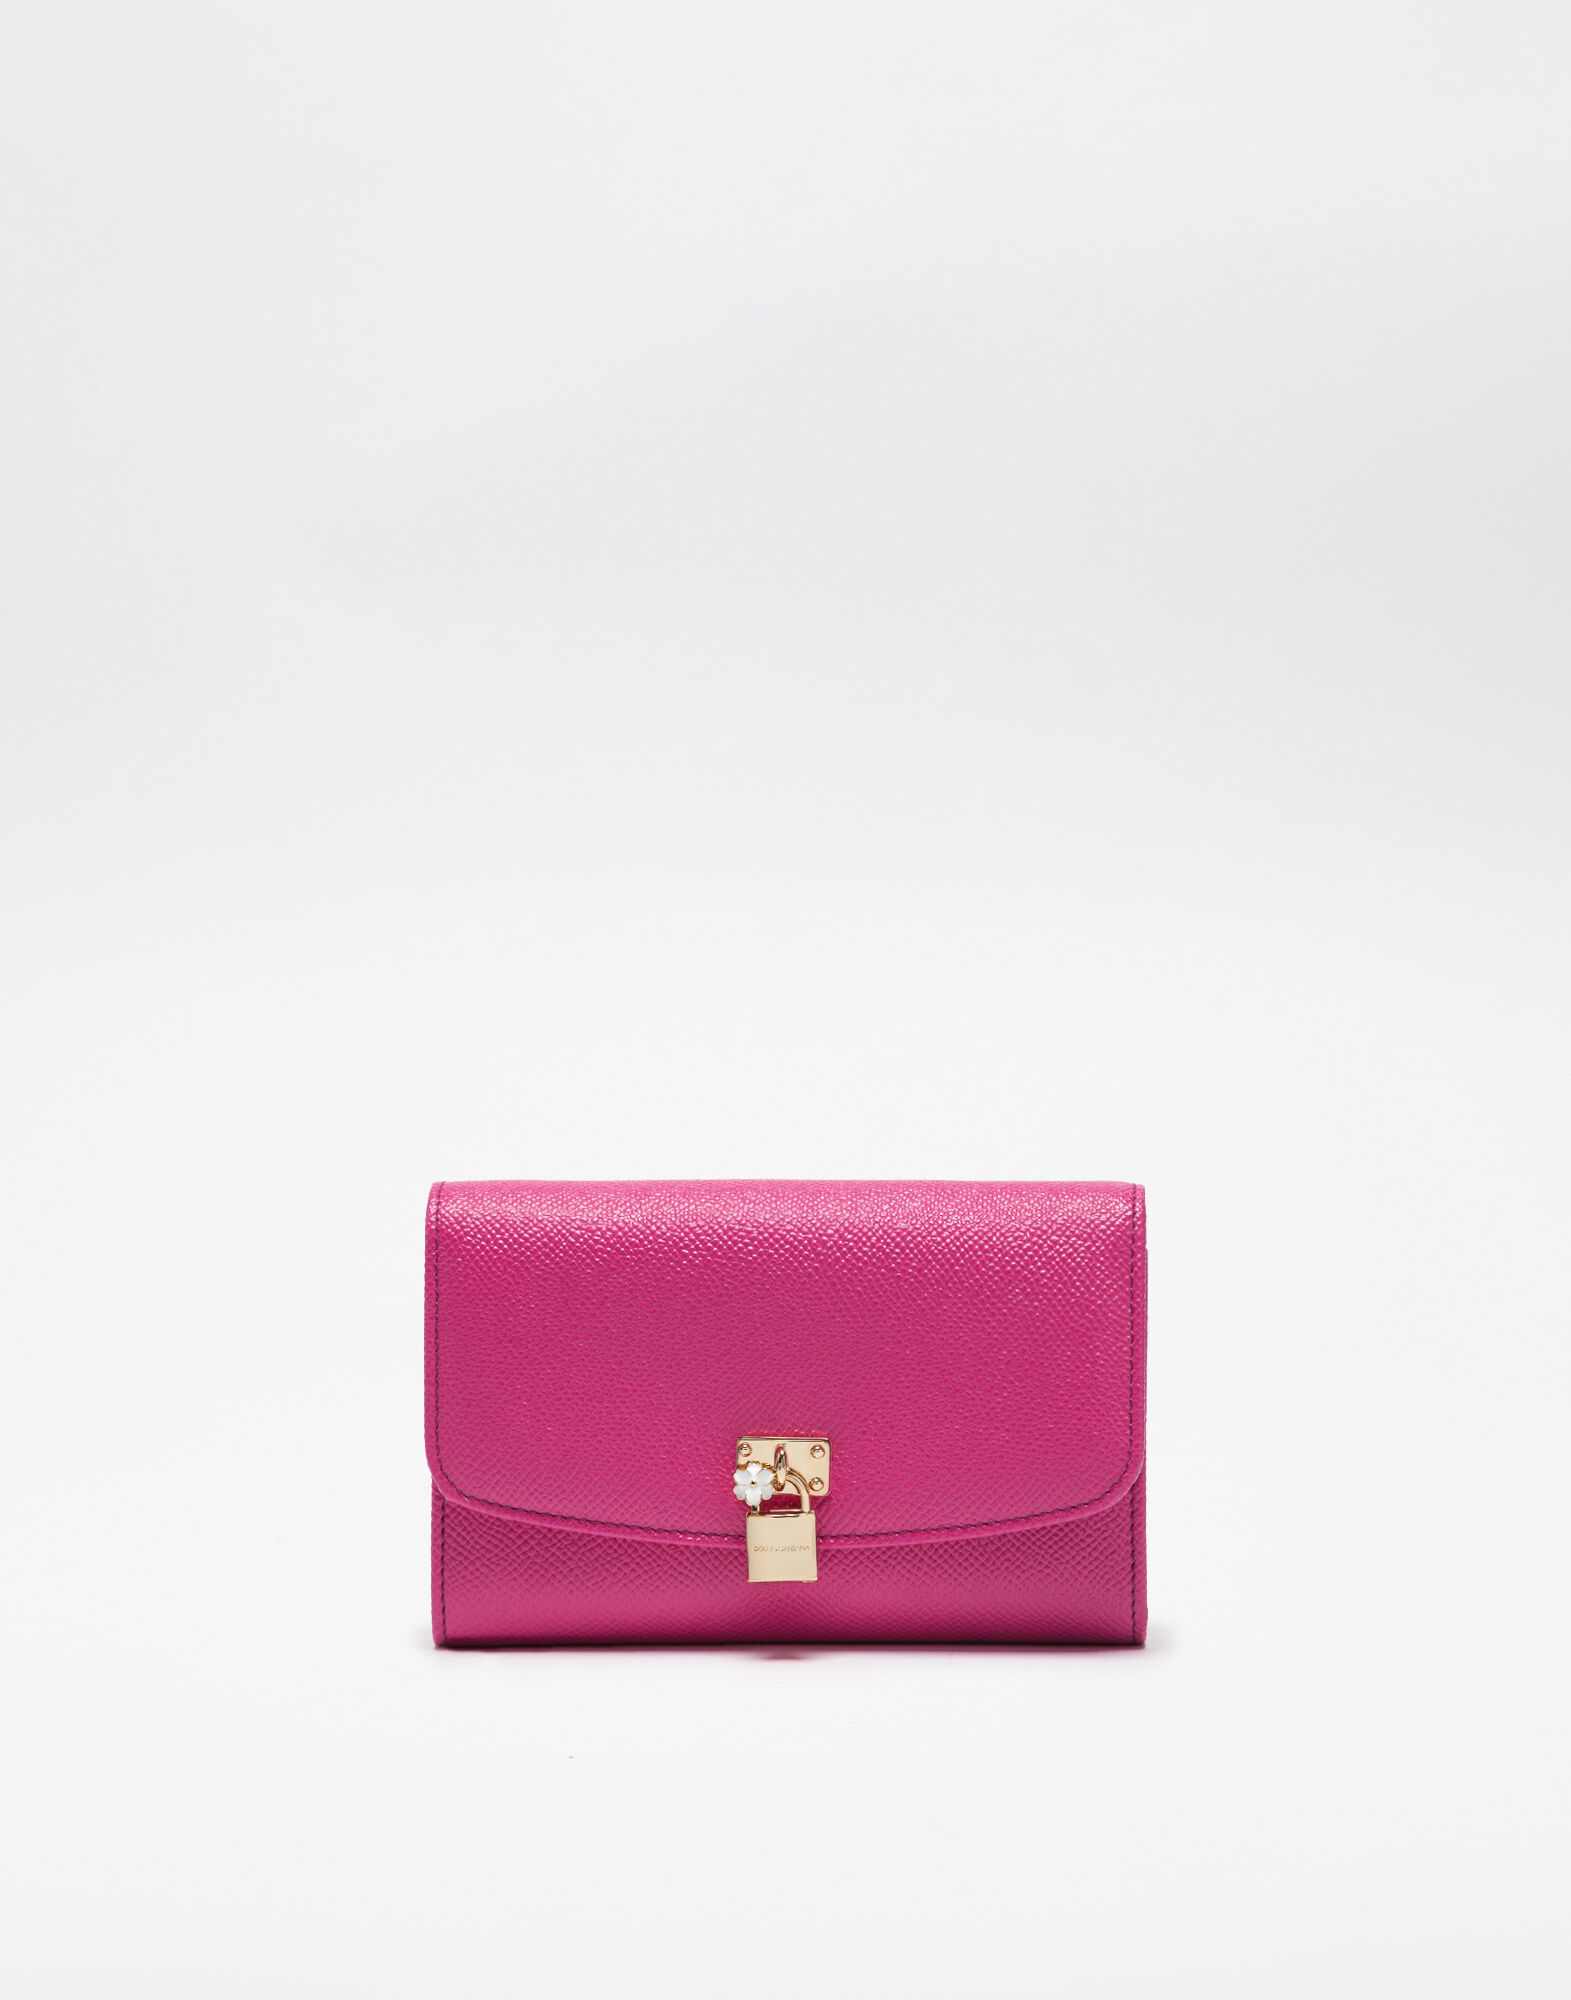 CONTINENTAL WALLET IN DAUPHINE LEATHER WITH PADLOCK